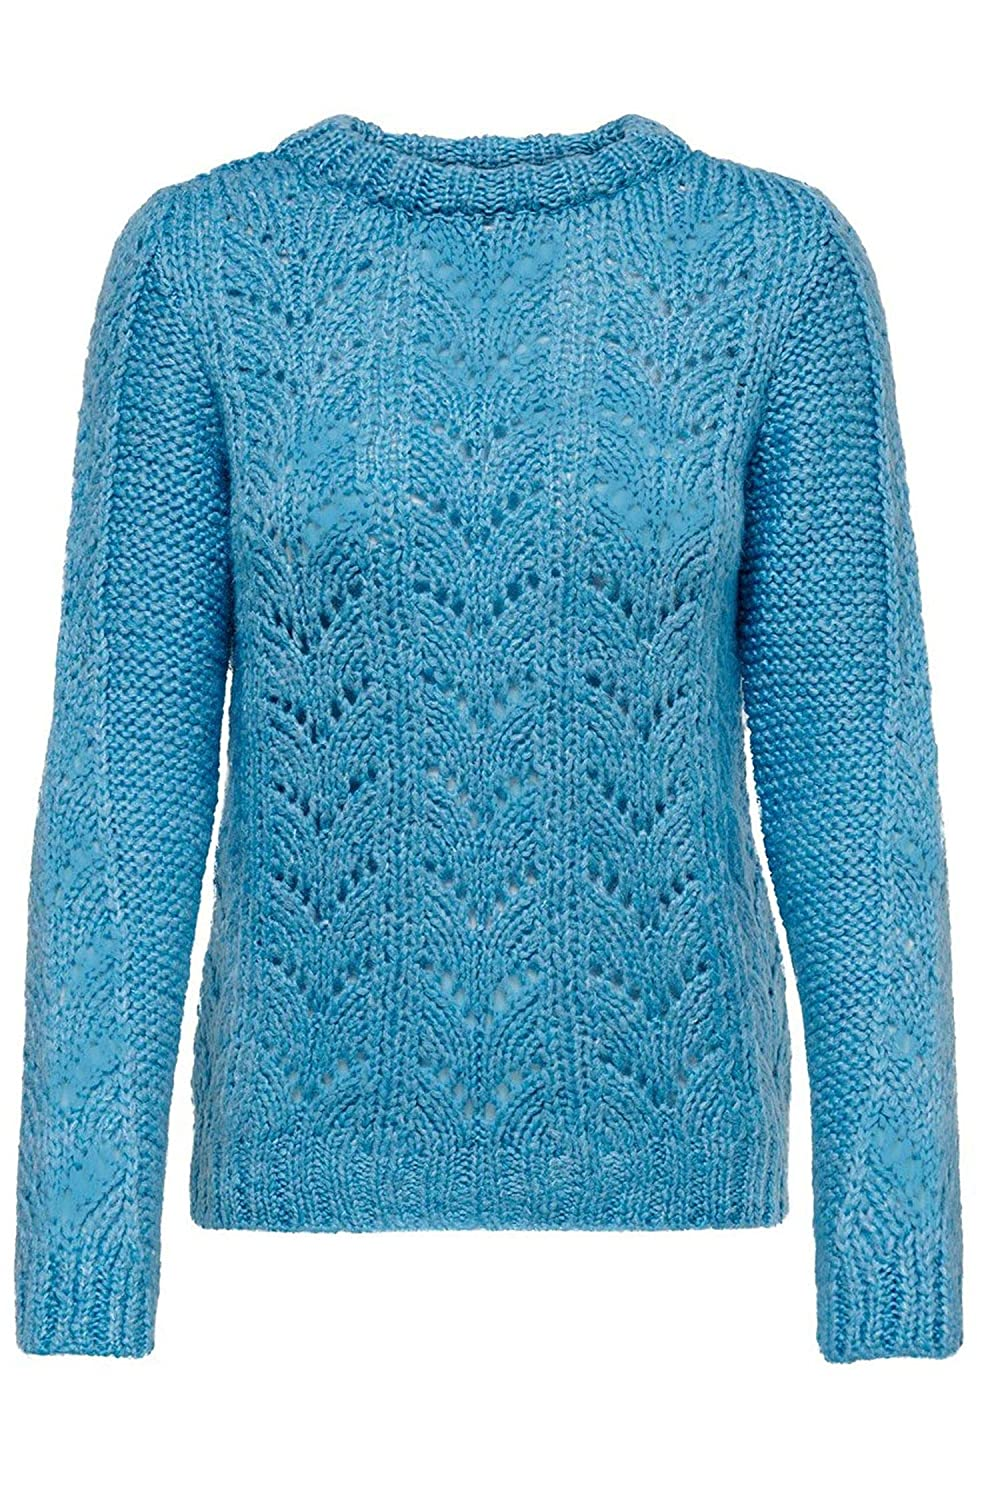 Only Women's 15179854LIGHTblueE Light bluee Acrylic Jumper